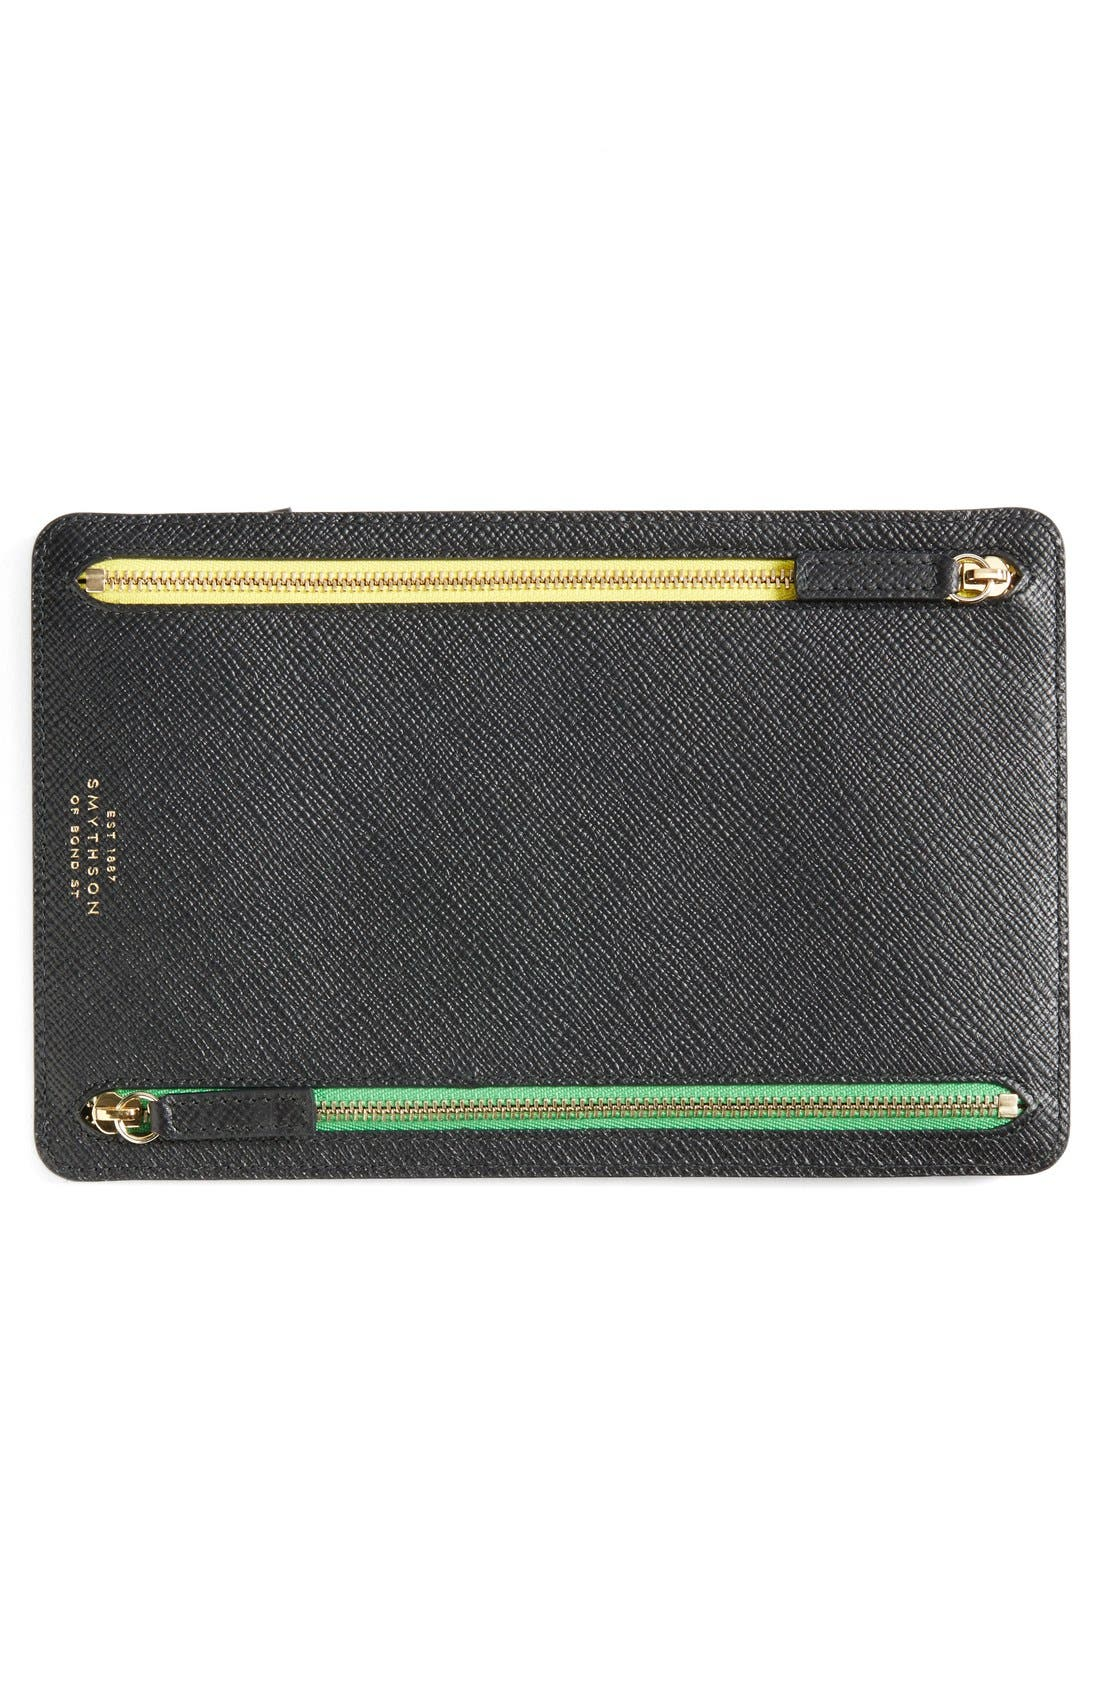 'Panama' Zip Currency Case,                         Main,                         color, Black